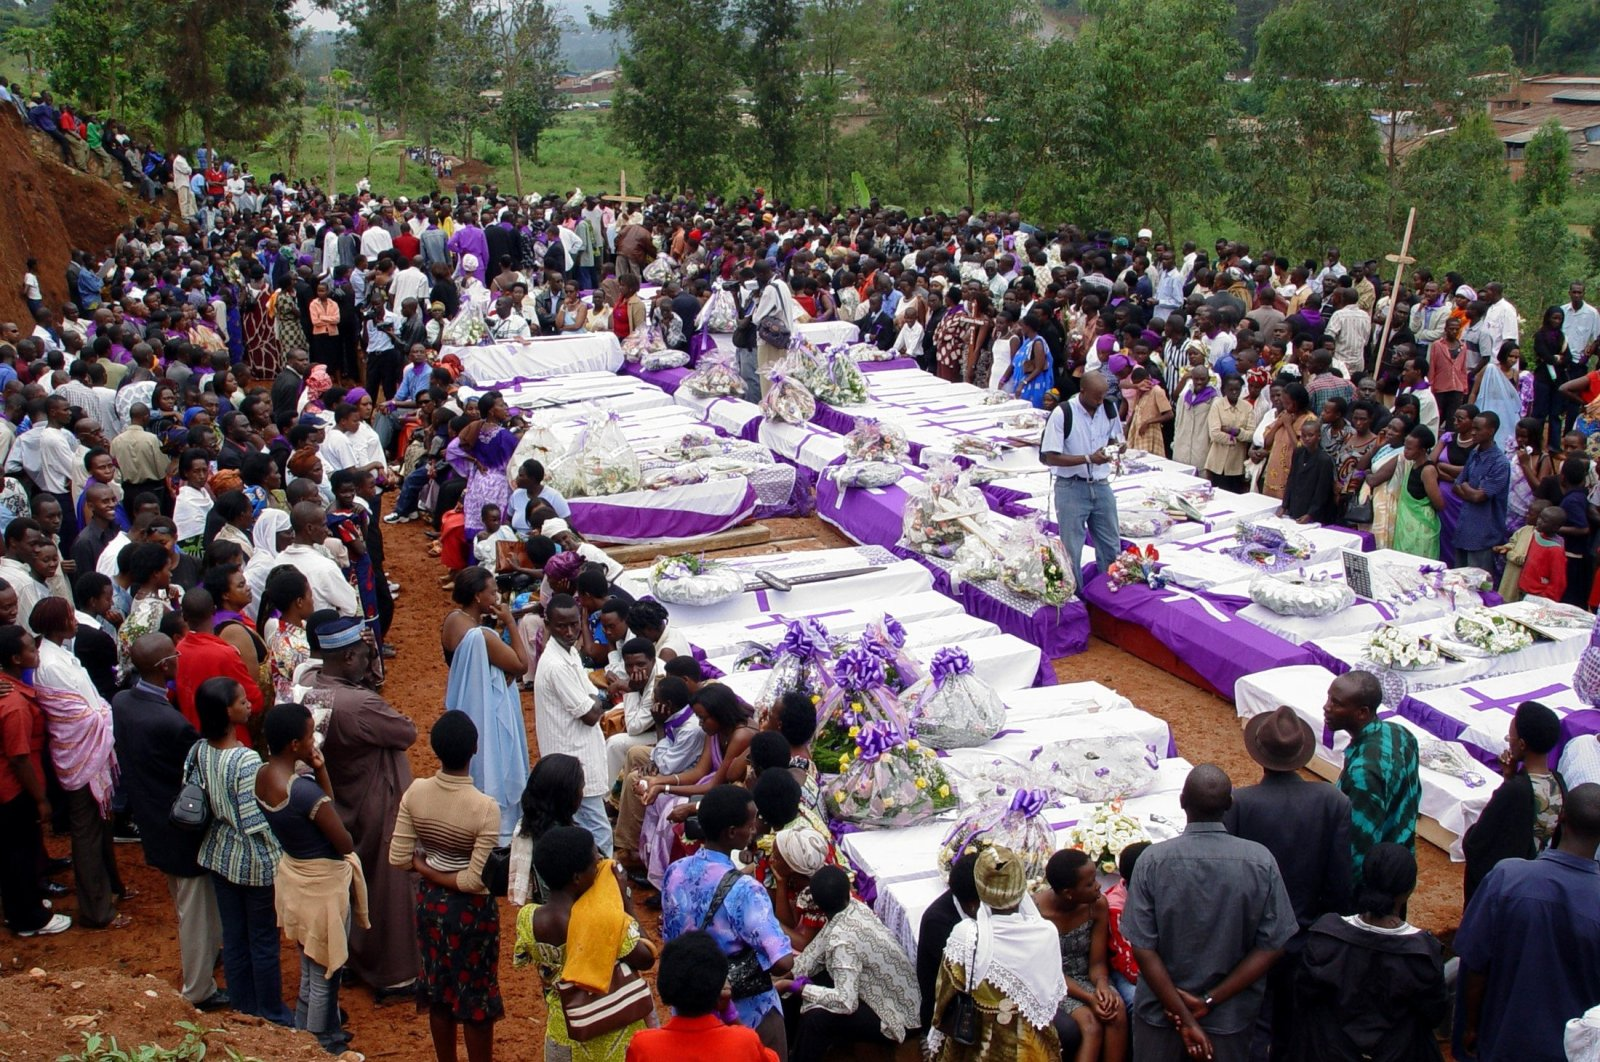 People pay their respects in front of dozens of coffins containing remains of more than 600 victims of the 1994 genocide, to be buried in mass graves during commemorations in the capital Kigali, Rwanda,  April 7, 2006. (Reuters Photo)